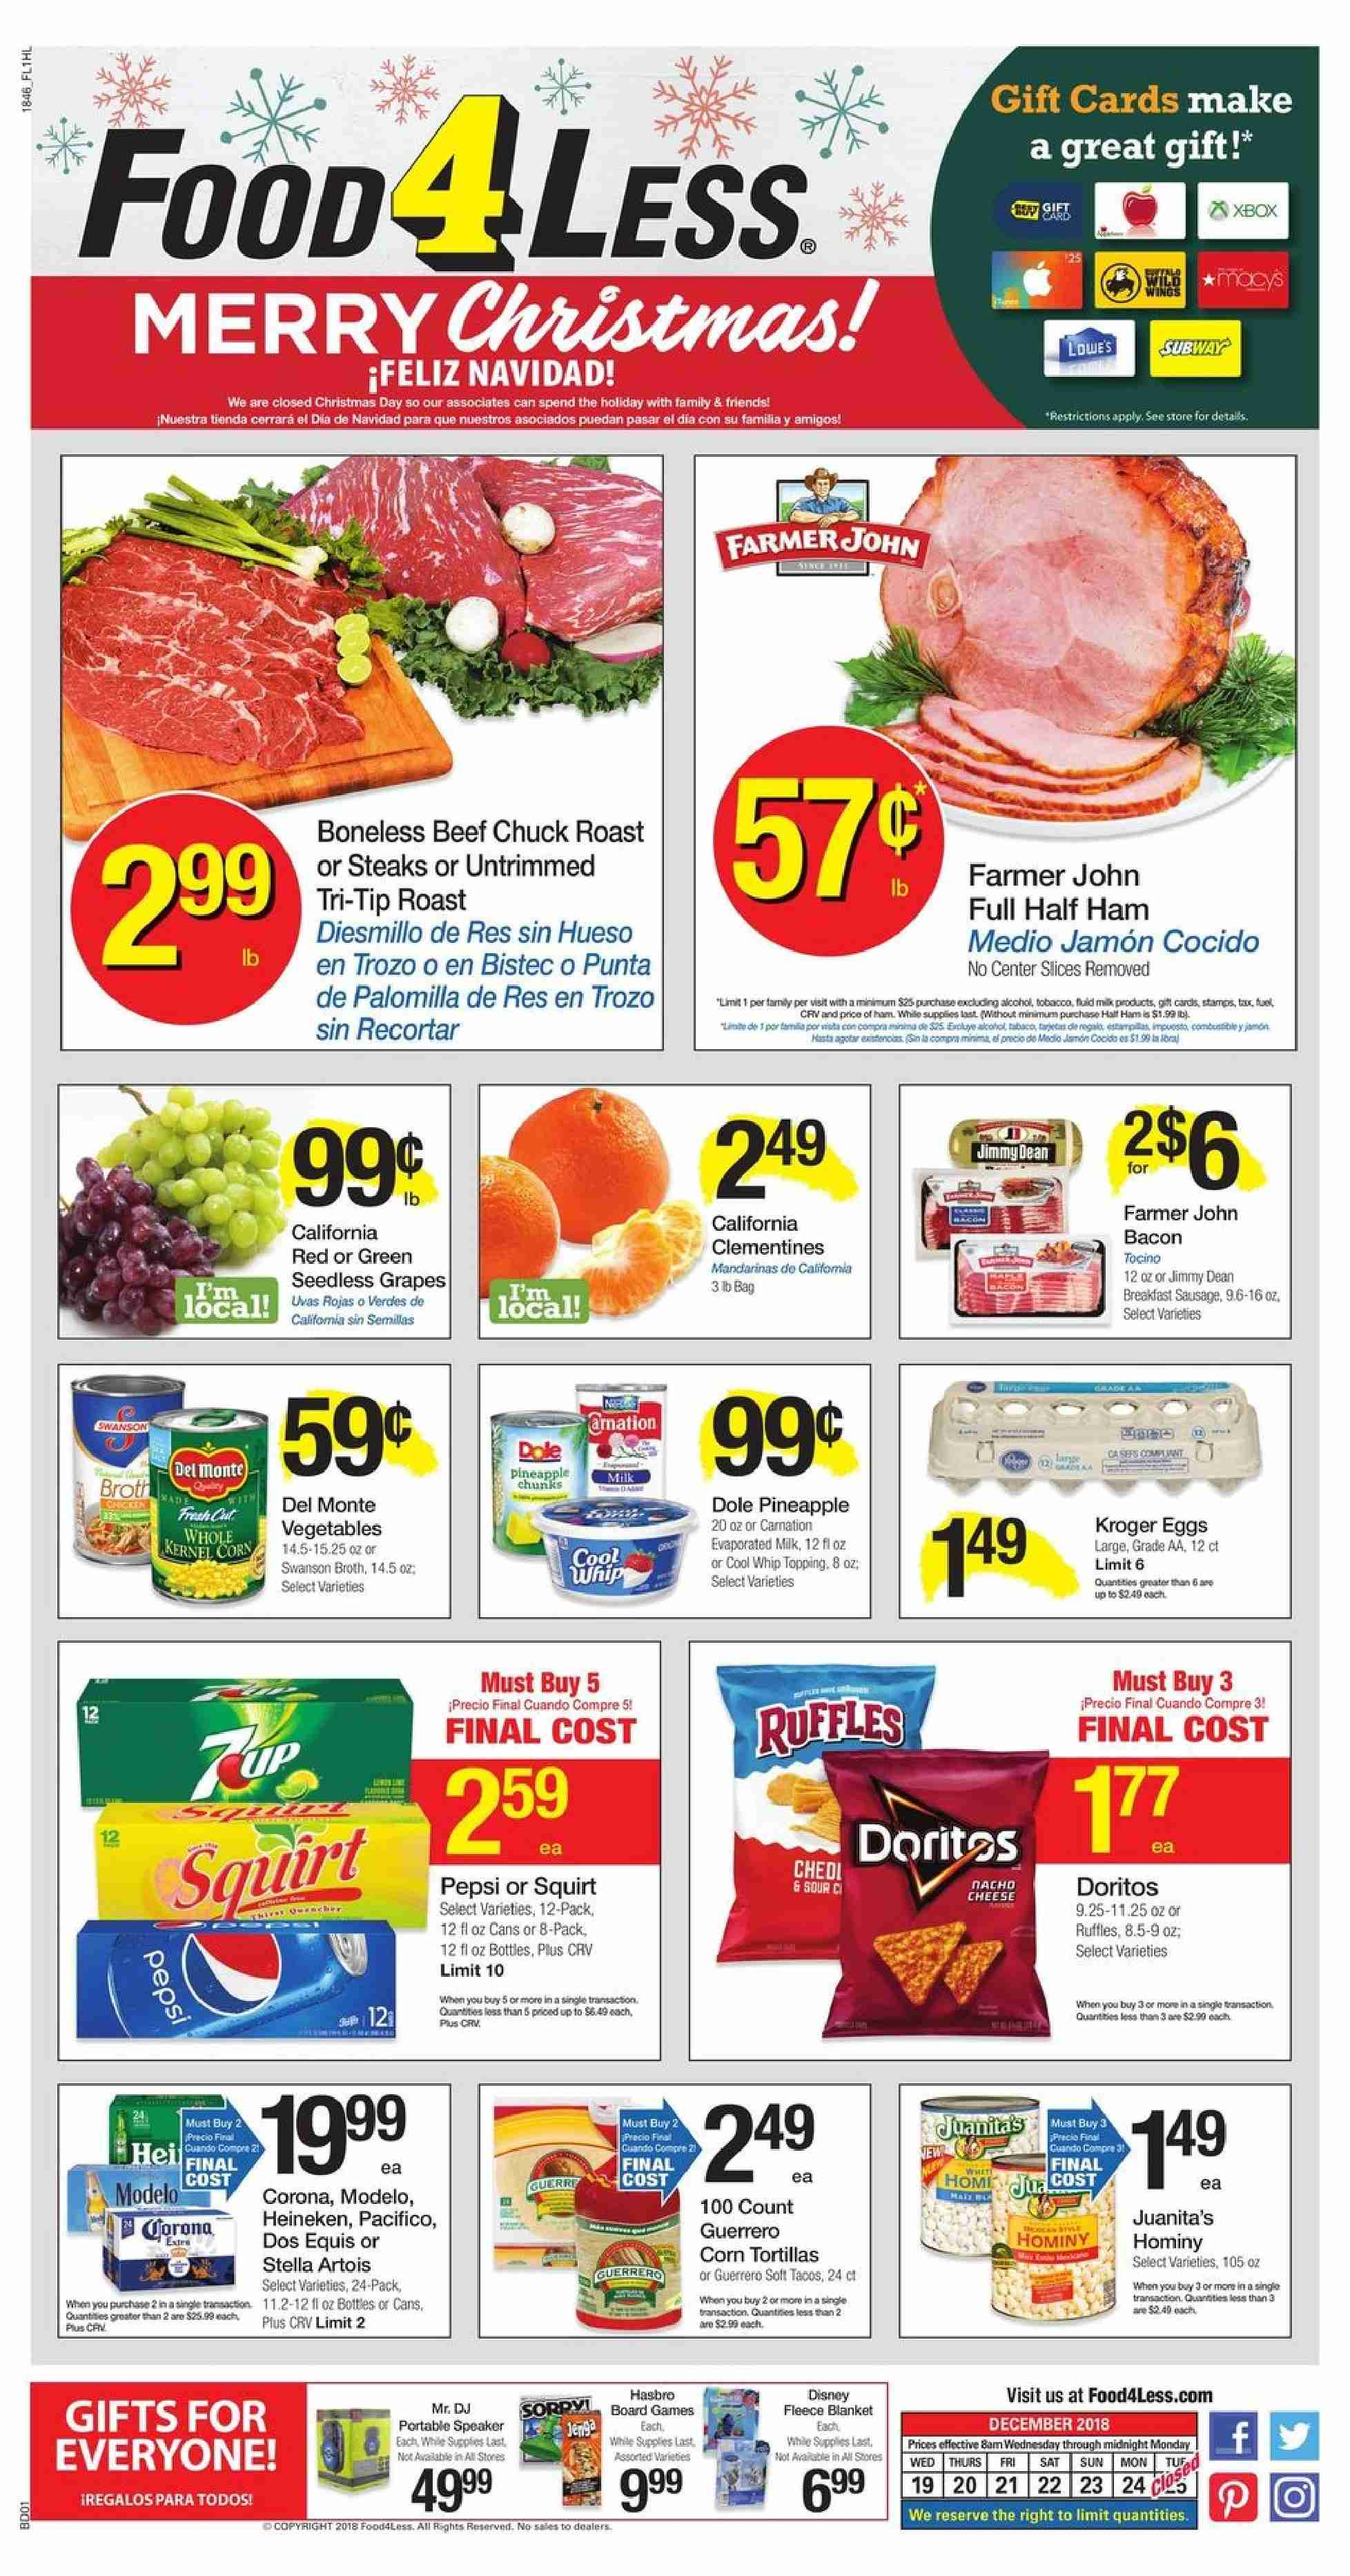 Food 4 Less Flyer - 12.19.2018 - 12.24.2018 - Sales products - Stella Artois, corn, grapes, seedless grapes, tortillas, ham, sausage, cheese, evaporated milk, Cool Whip, corn tortillas, Doritos, topping, Pepsi, beef meat, half ham, speaker. Page 1.